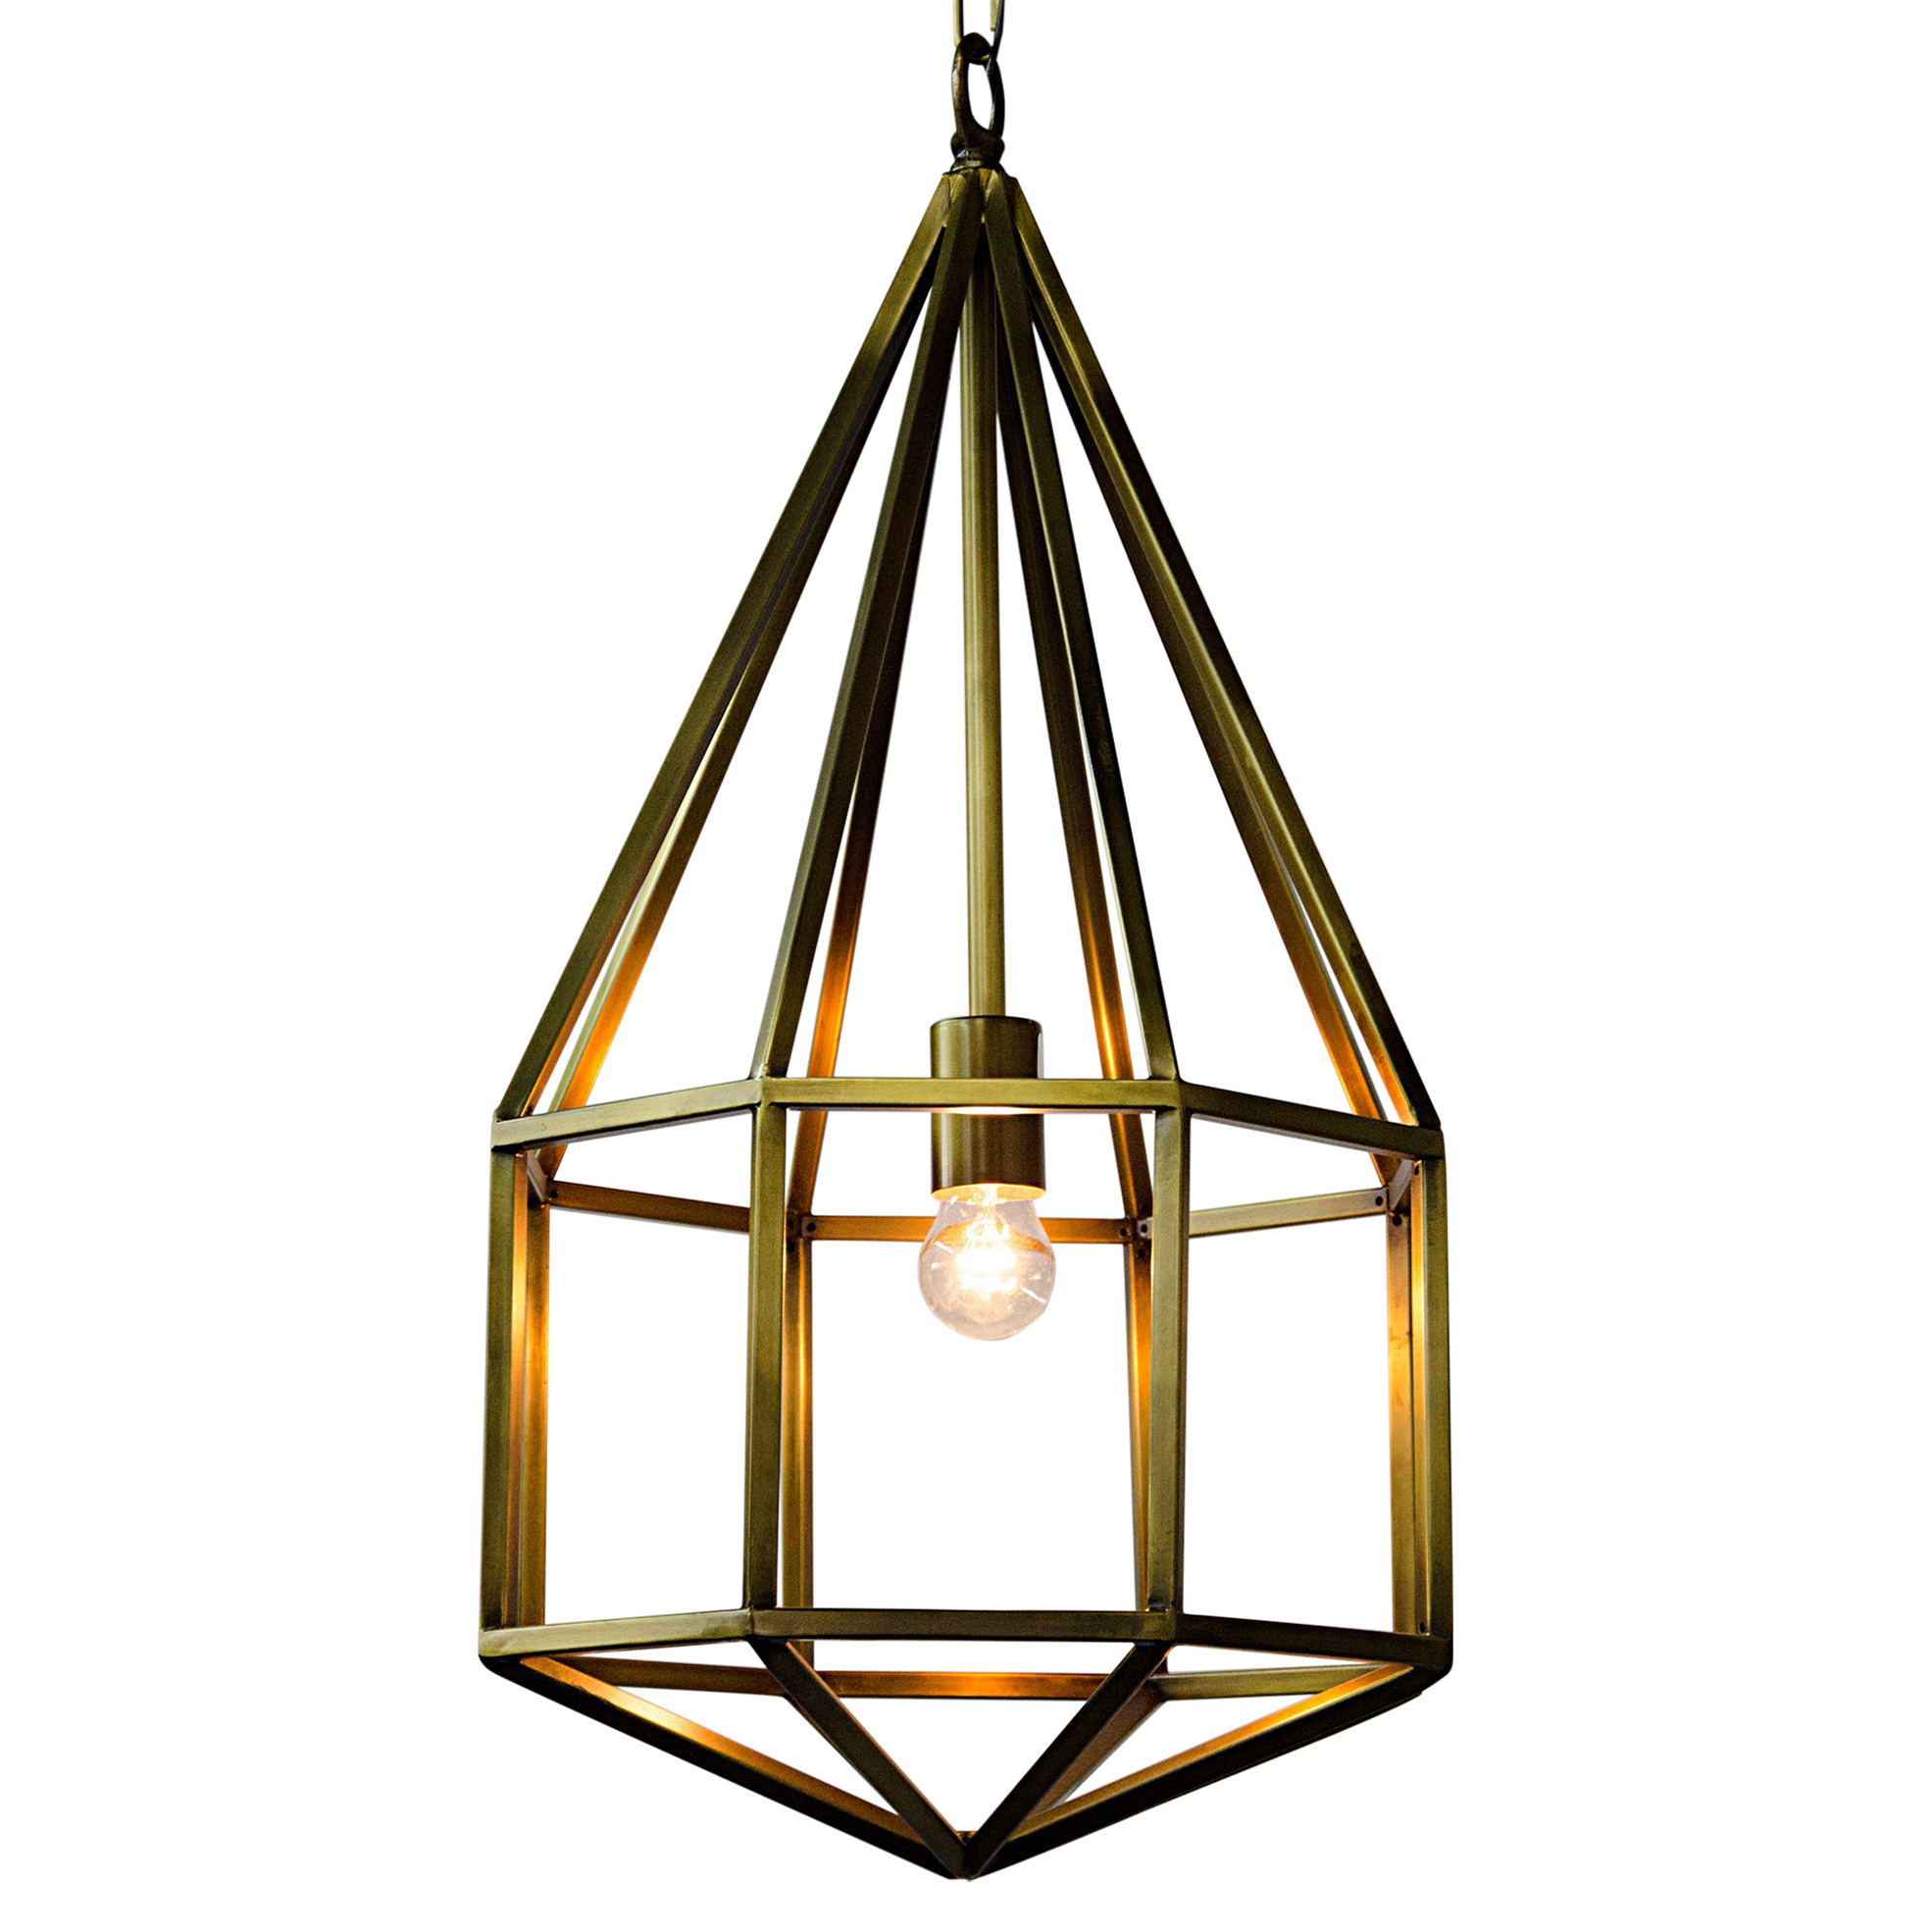 Alessia Modern Classic Antique Brass Diamond Pendant - 25.5H